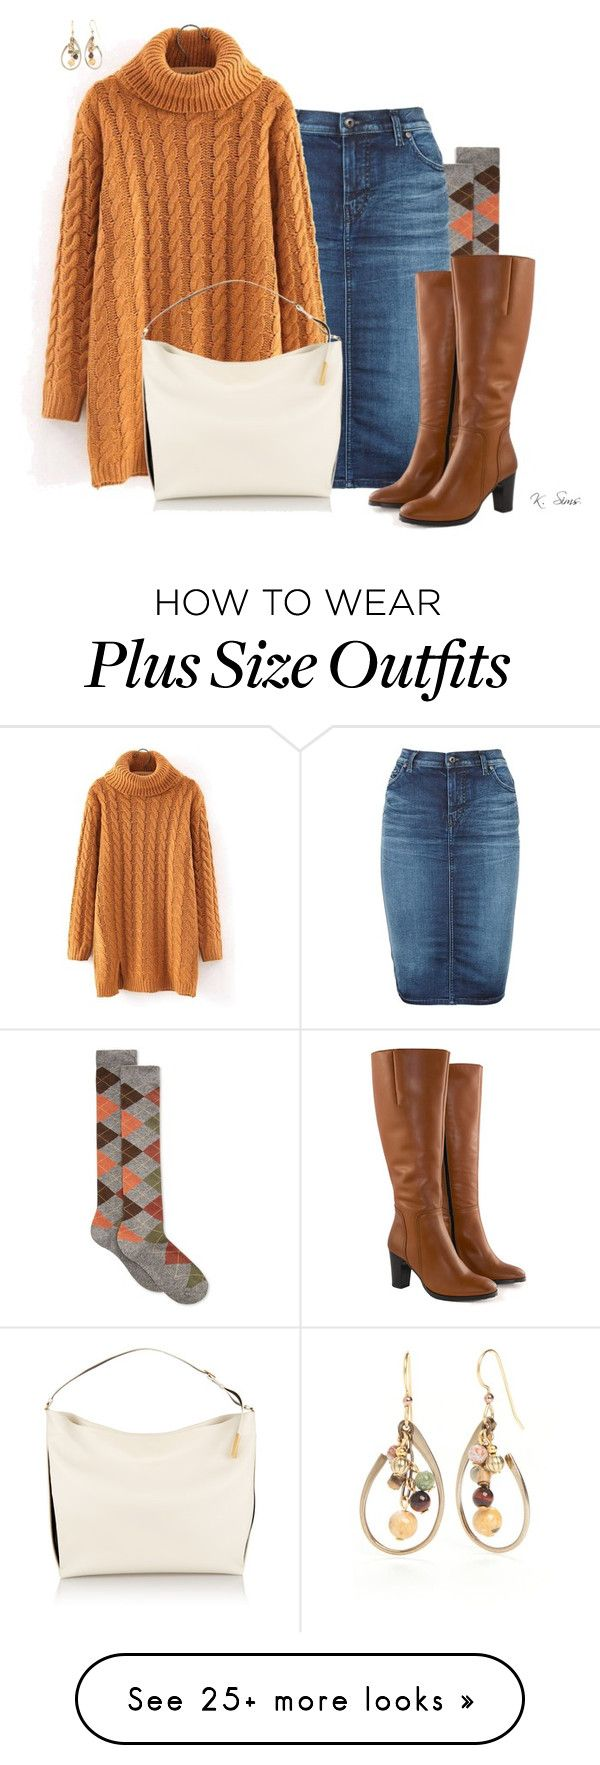 """""""Love These boots!!"""" by ksims-1 on Polyvore featuring Hue, Diesel, Jilsen Quality Boots, STELLA McCARTNEY and Silver Forest"""